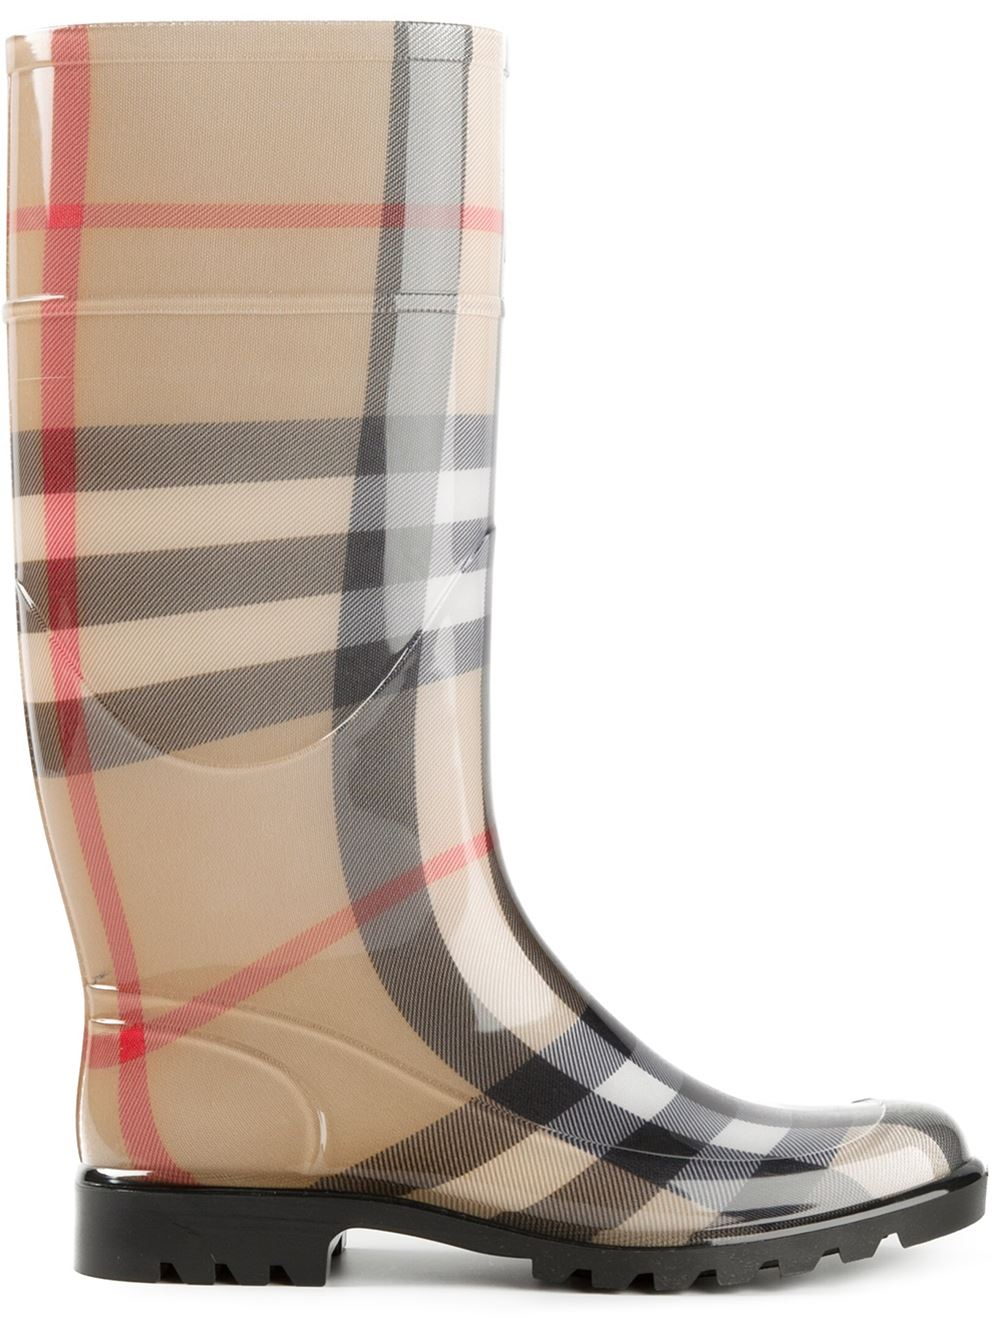 Burberry House Check Rain Boots In Beige Nude -9626